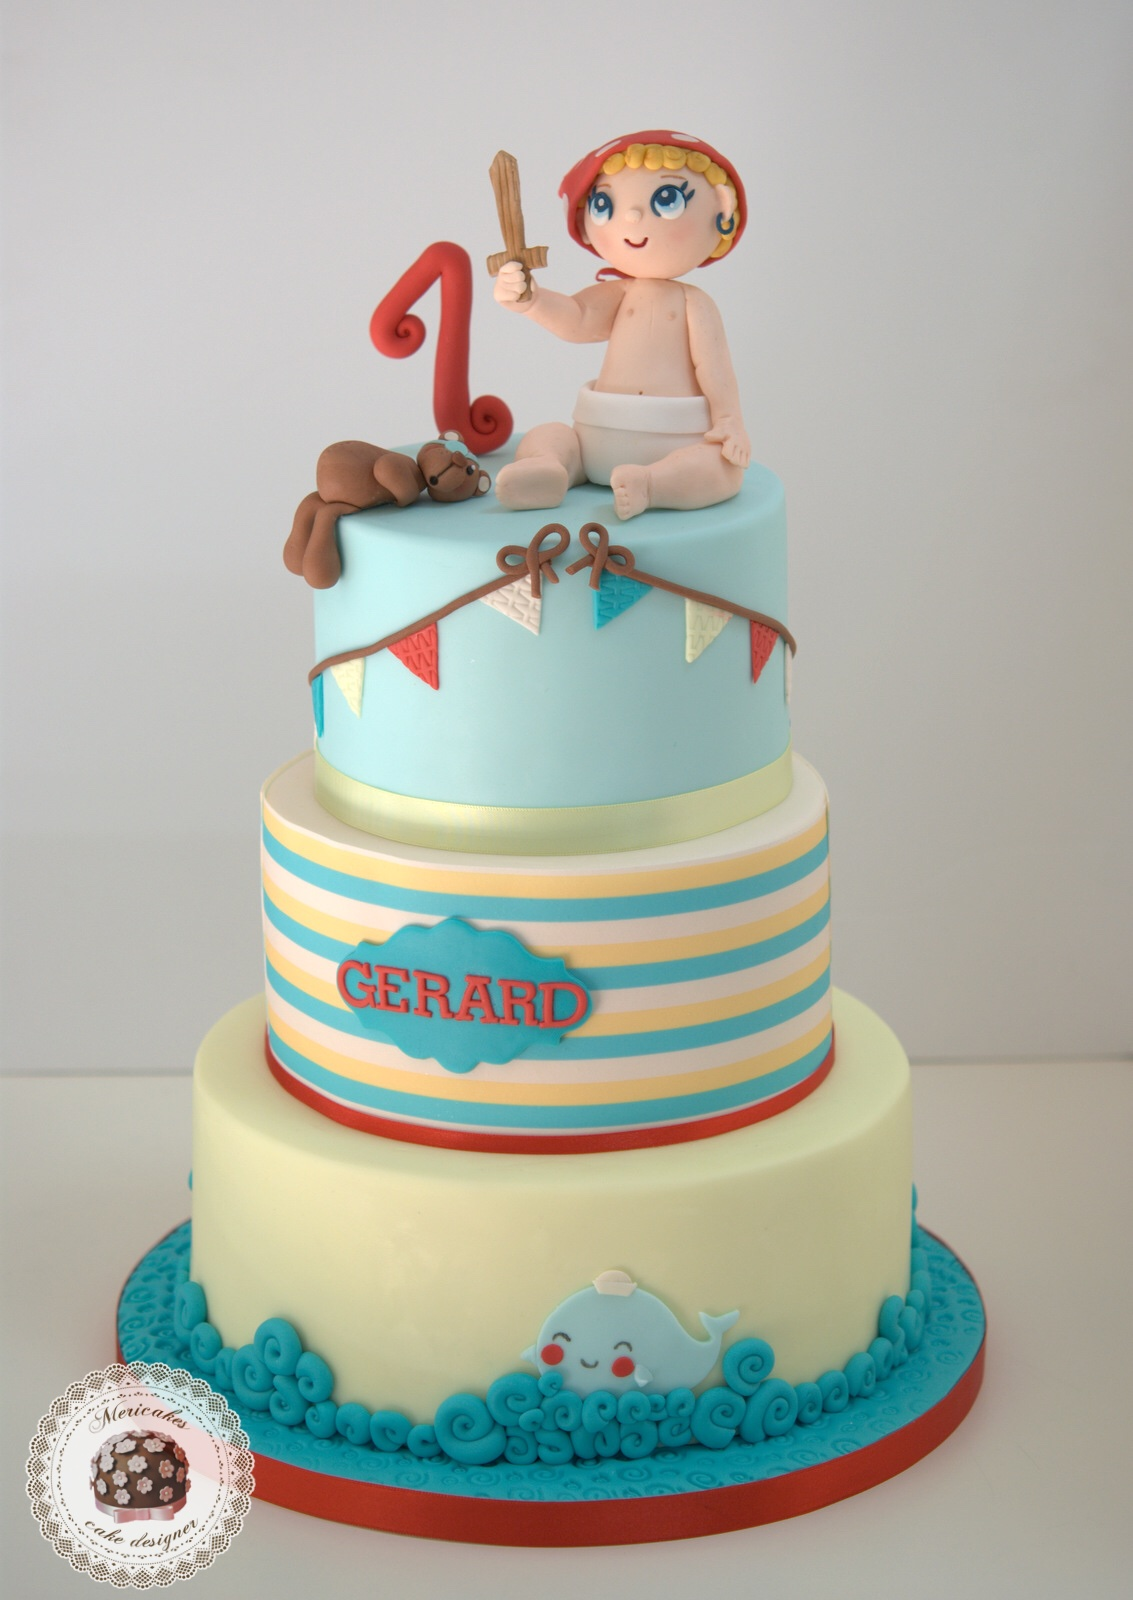 tarta-infantil-baby-cake-pirate-kawaii-tartas-barcelona-mericakes-pirata-marinera-sailor-cake-decorating-5